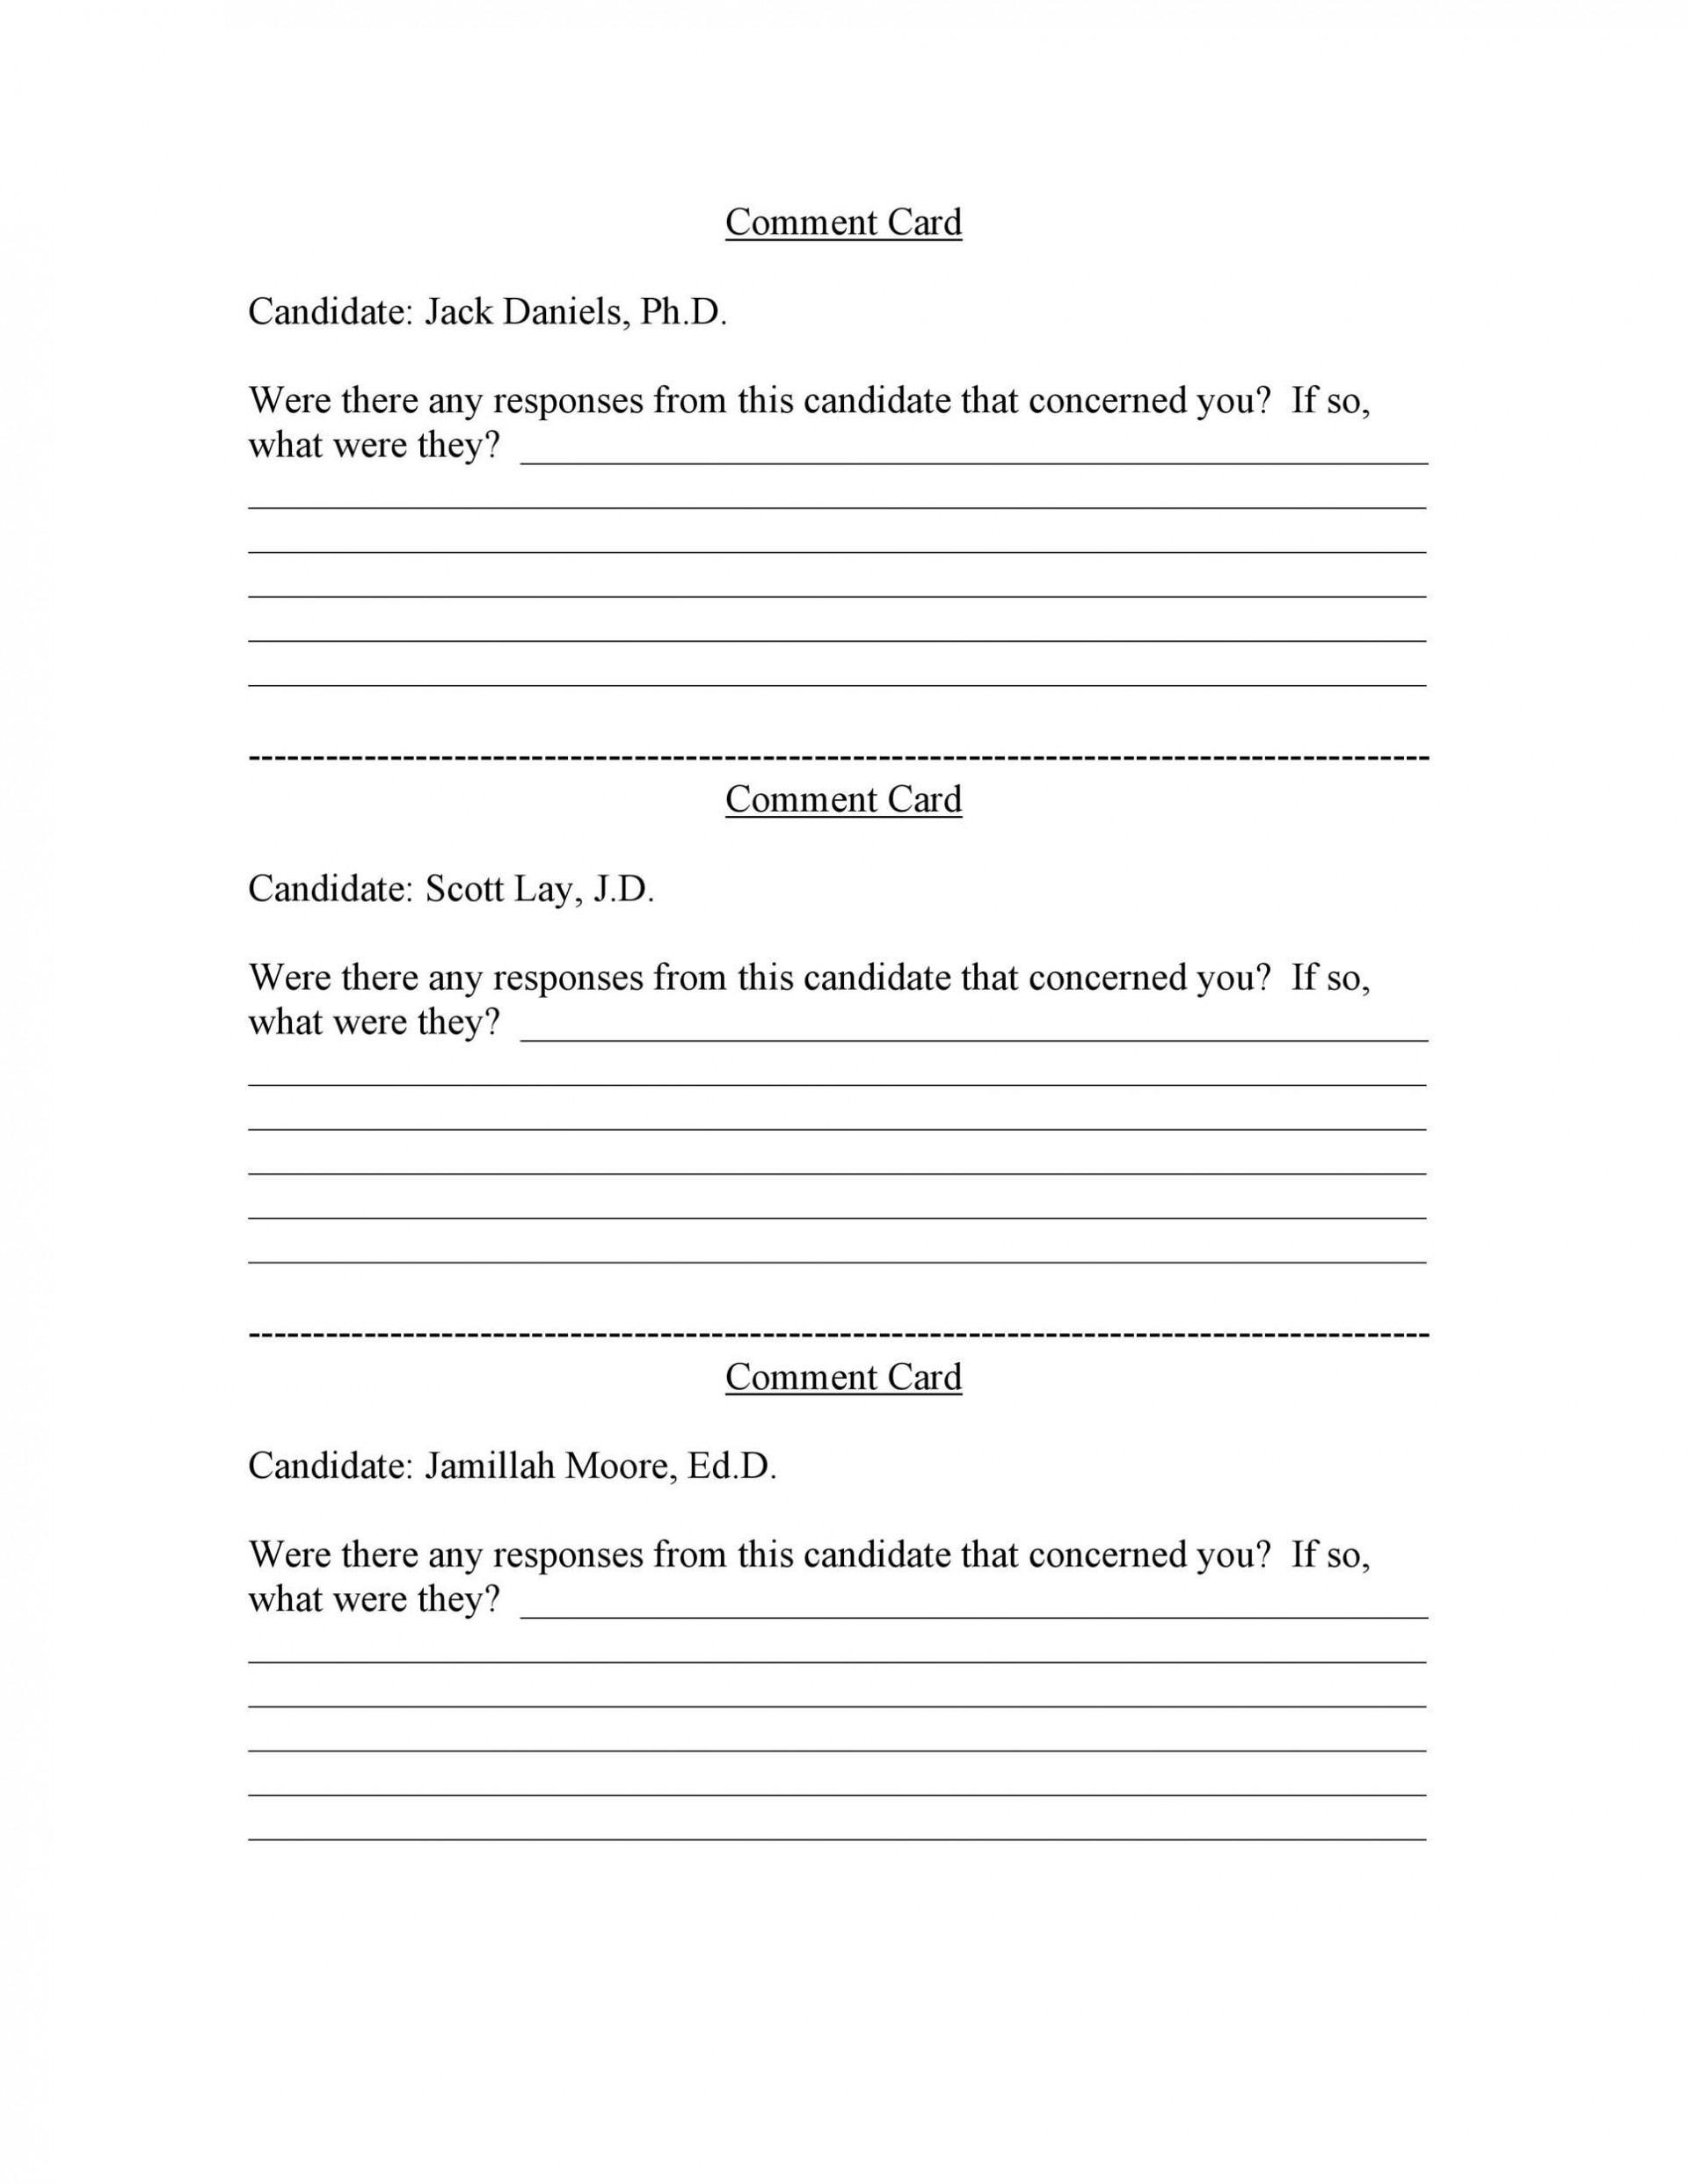 006 Impressive Restaurant Comment Card Template For Word Picture 1920